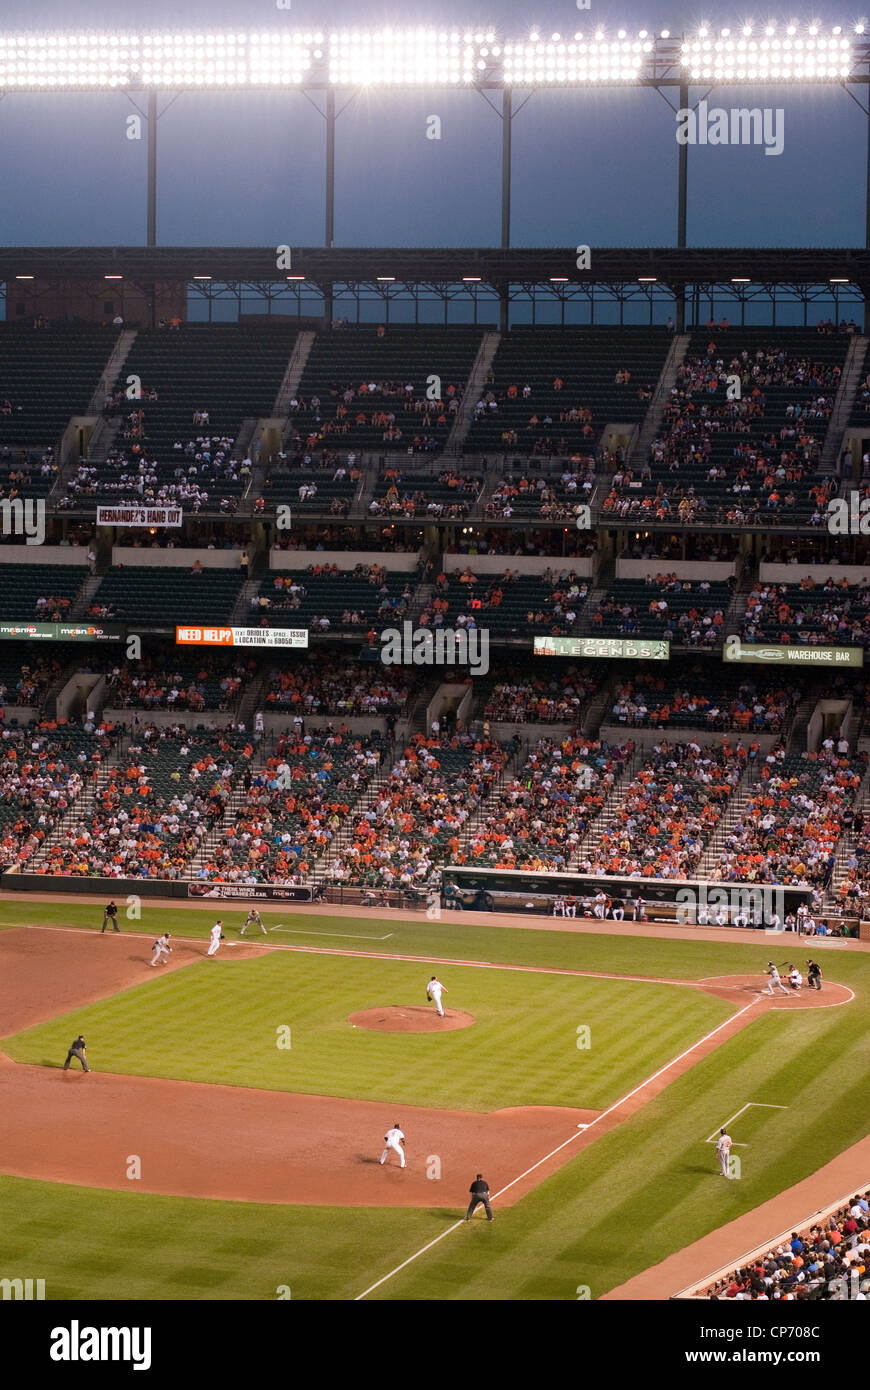 Baseball stadium - Stock Image